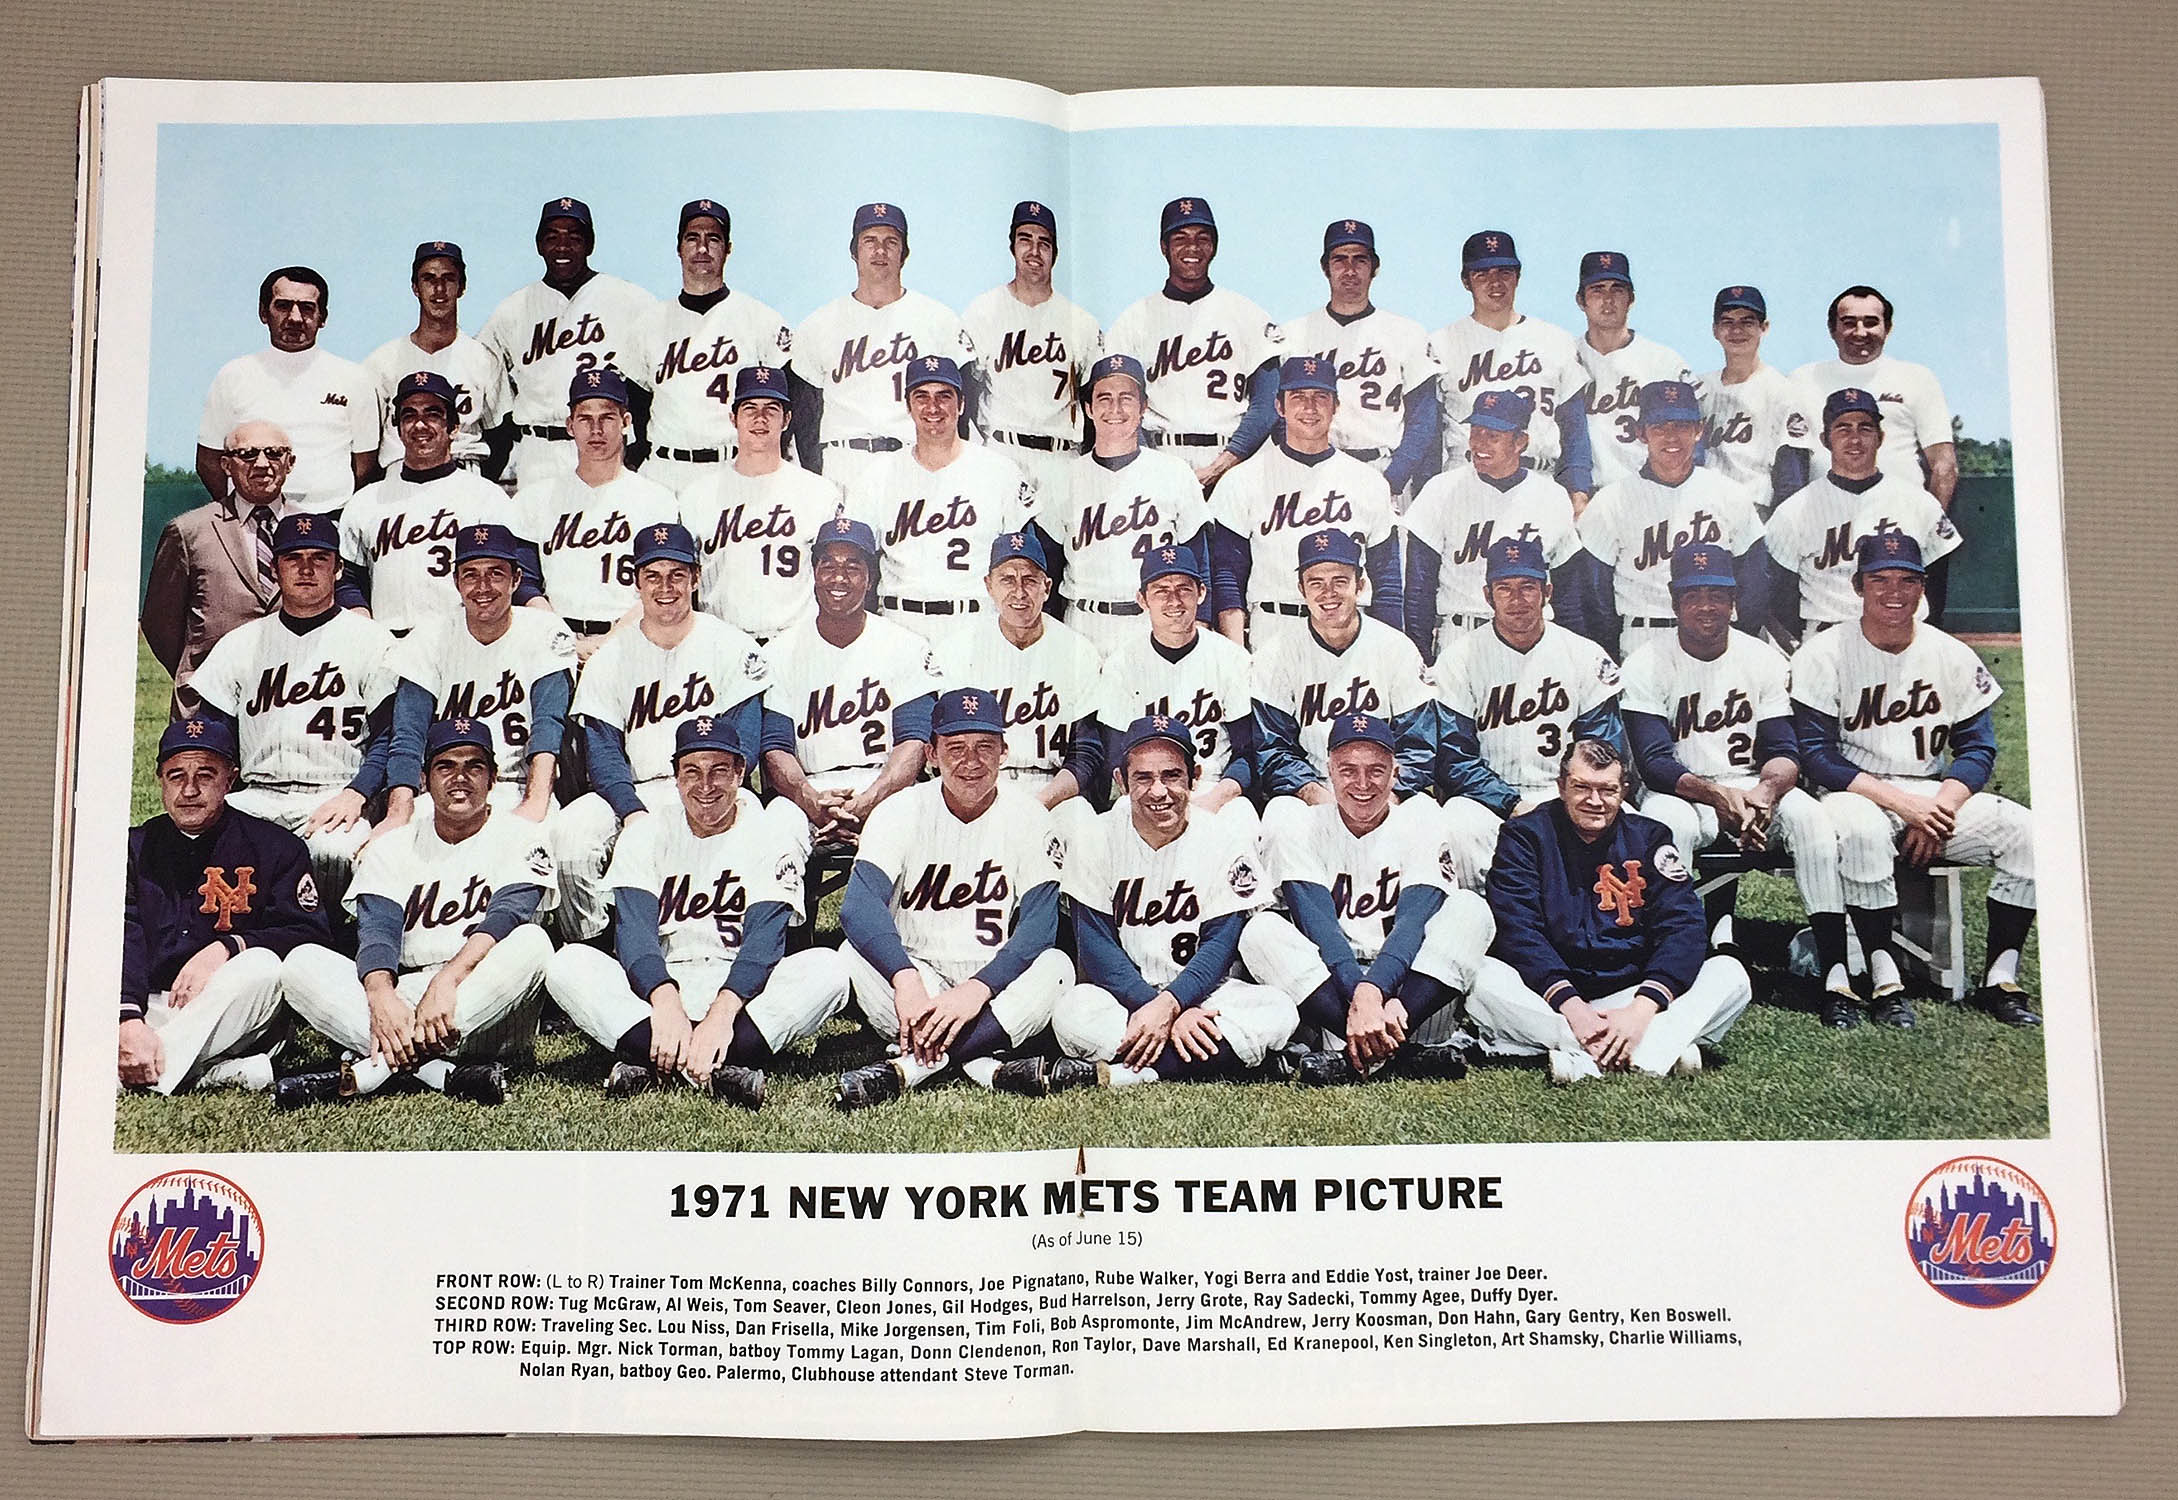 1971 New York Mets Team Picture